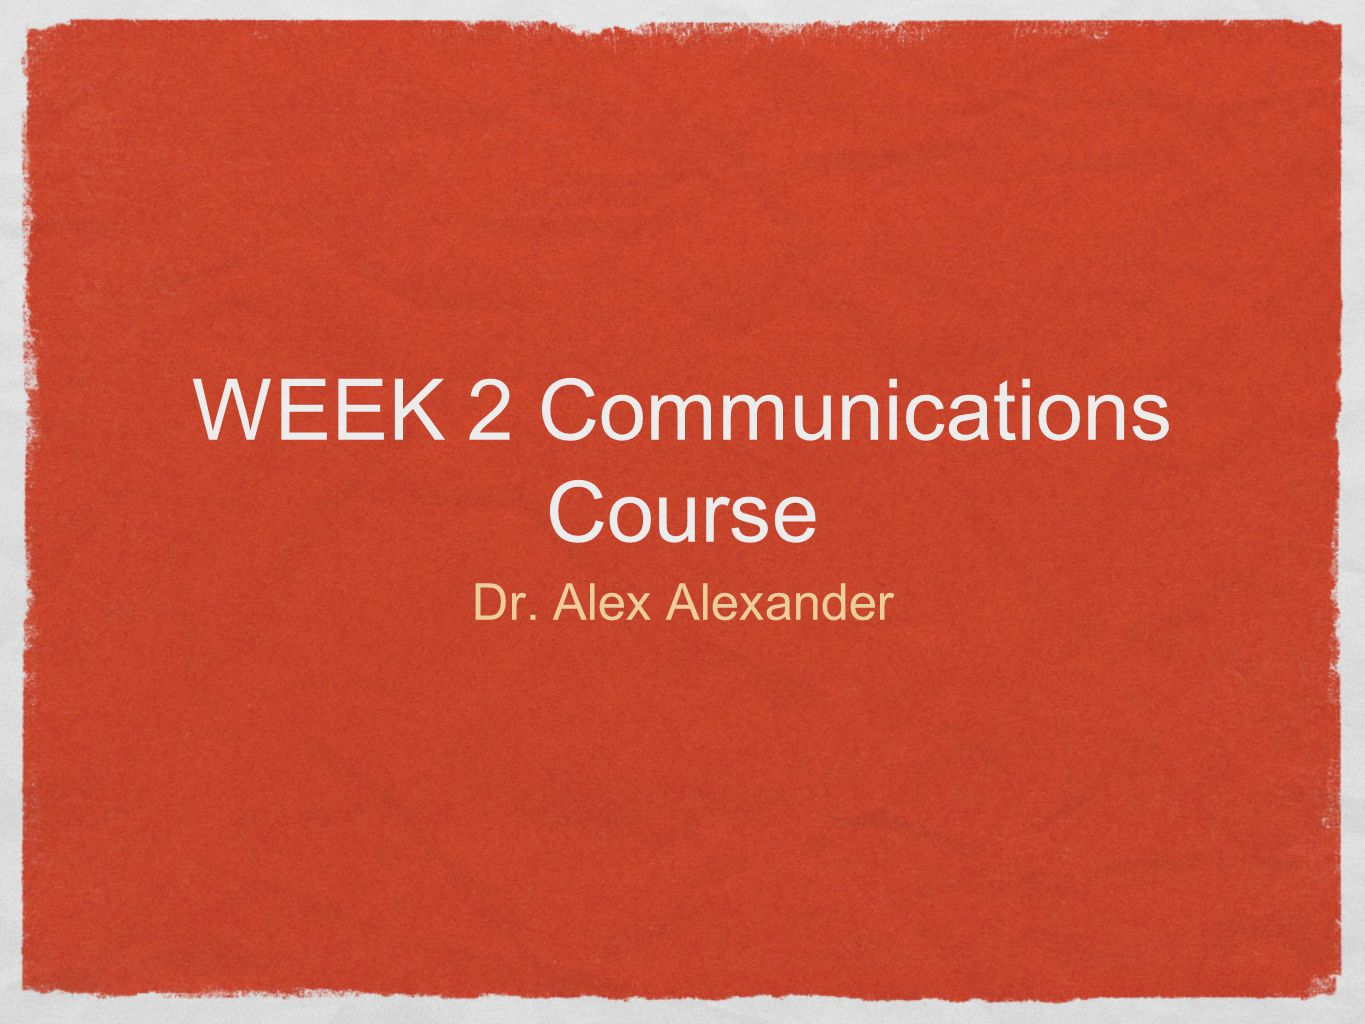 WEEK 2 Communications Course